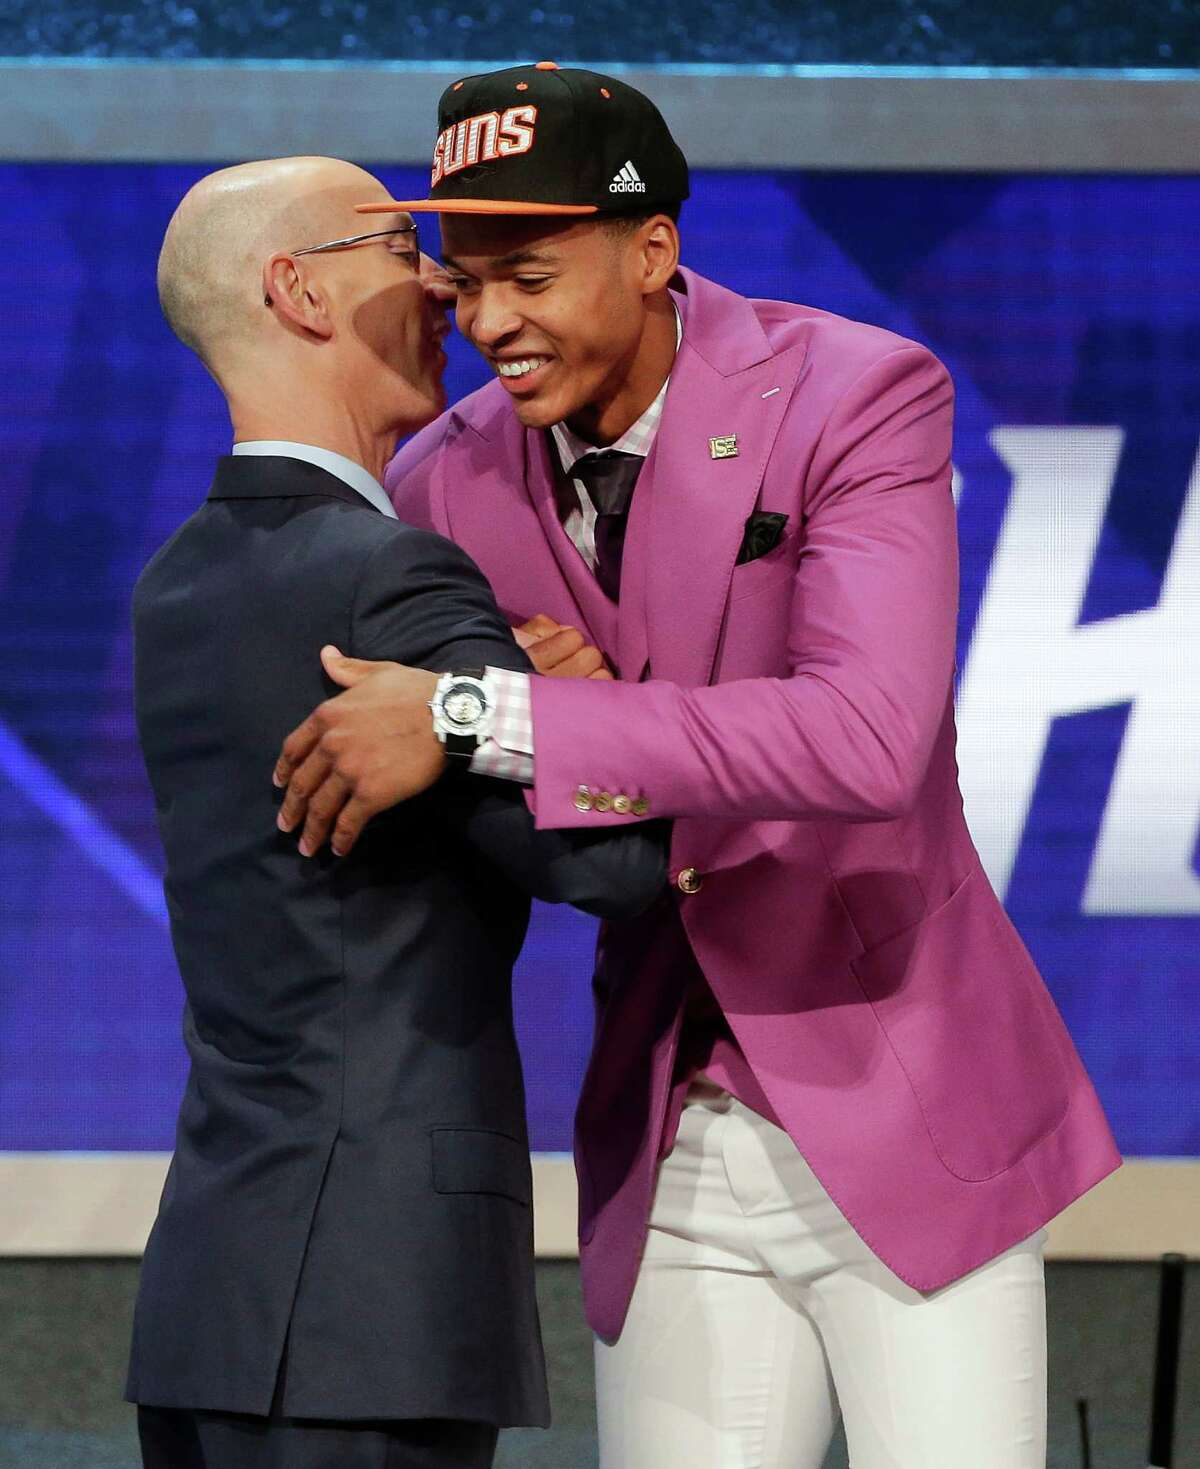 Skal Labissiere, right, is greeted by NBA Commissioner Adam Silver after being selected 28th overall by the Phoenix Suns during the NBA basketball draft, Thursday, June 23, 2016, in New York. (AP Photo/Frank Franklin II)